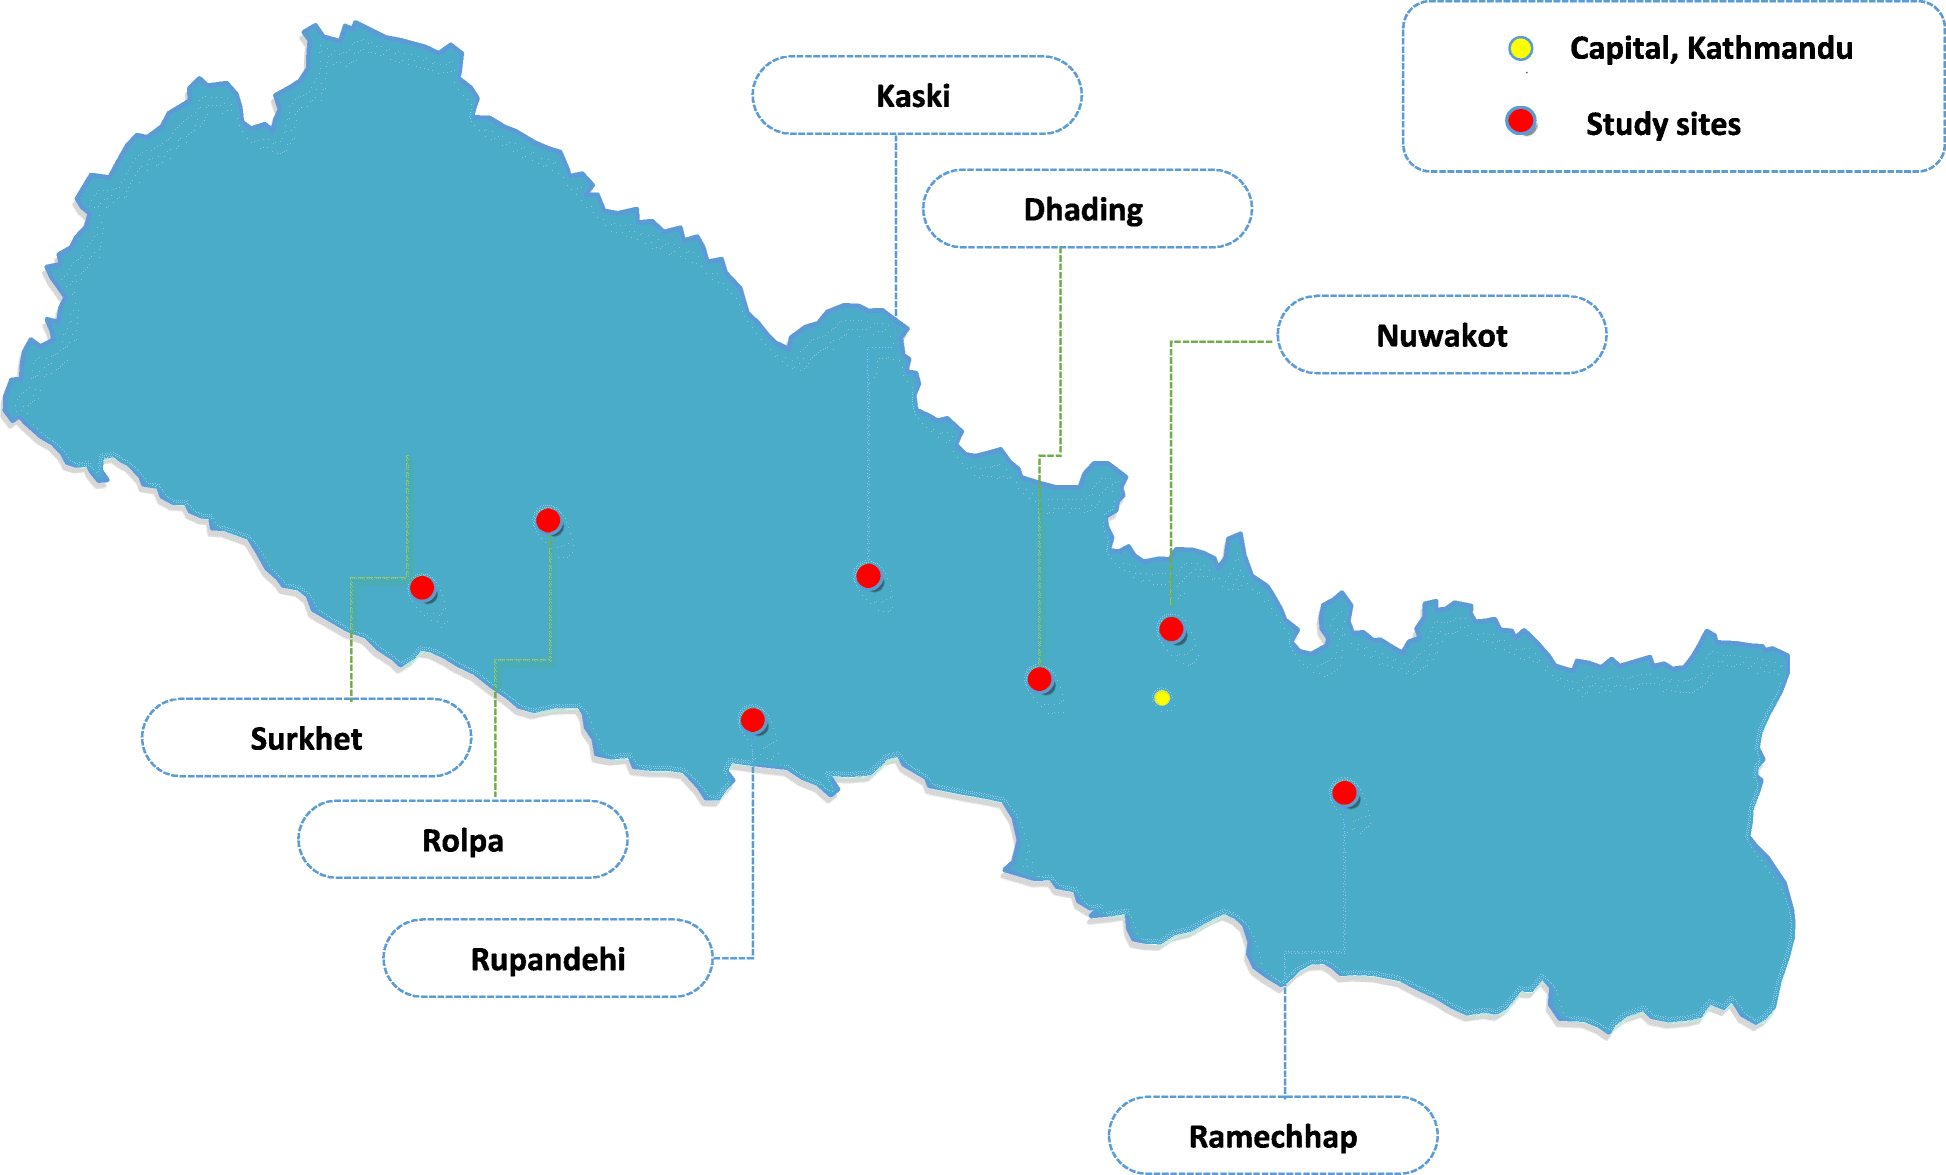 Impact of a structured yoga program on blood pressure ... on map of rukum, map of bhaktapur, map of surkhet, map of parsa, map of dolpa, map of doti, map of solukhumbu, map of jhapa, map of dailekh, map of gulmi, map of dang, map of baitadi, map of birgunj, map of makwanpur, map of humla, map of dhankuta, map of sindhupalchok,